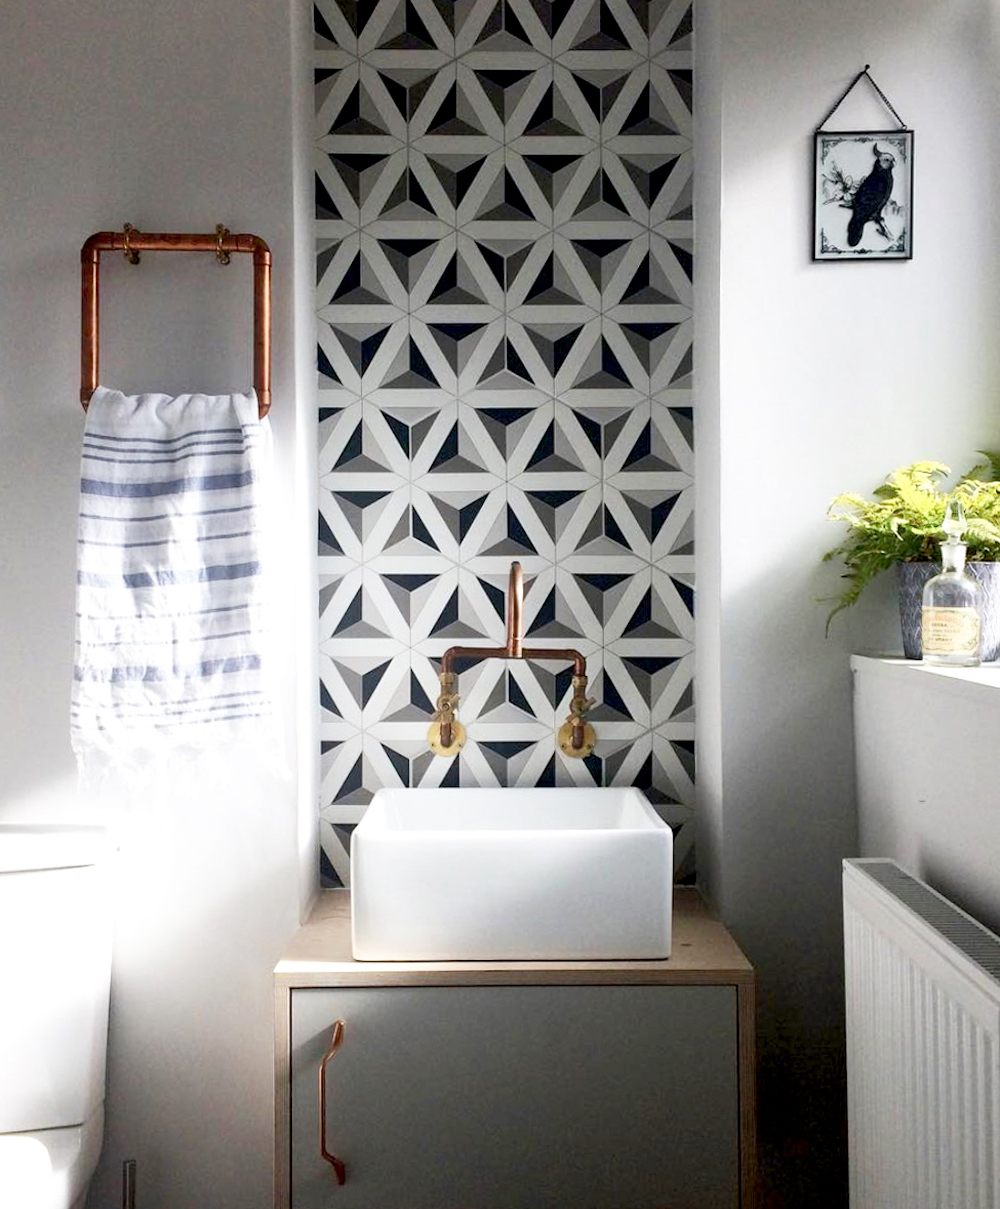 Feature geometric tile in bathroom